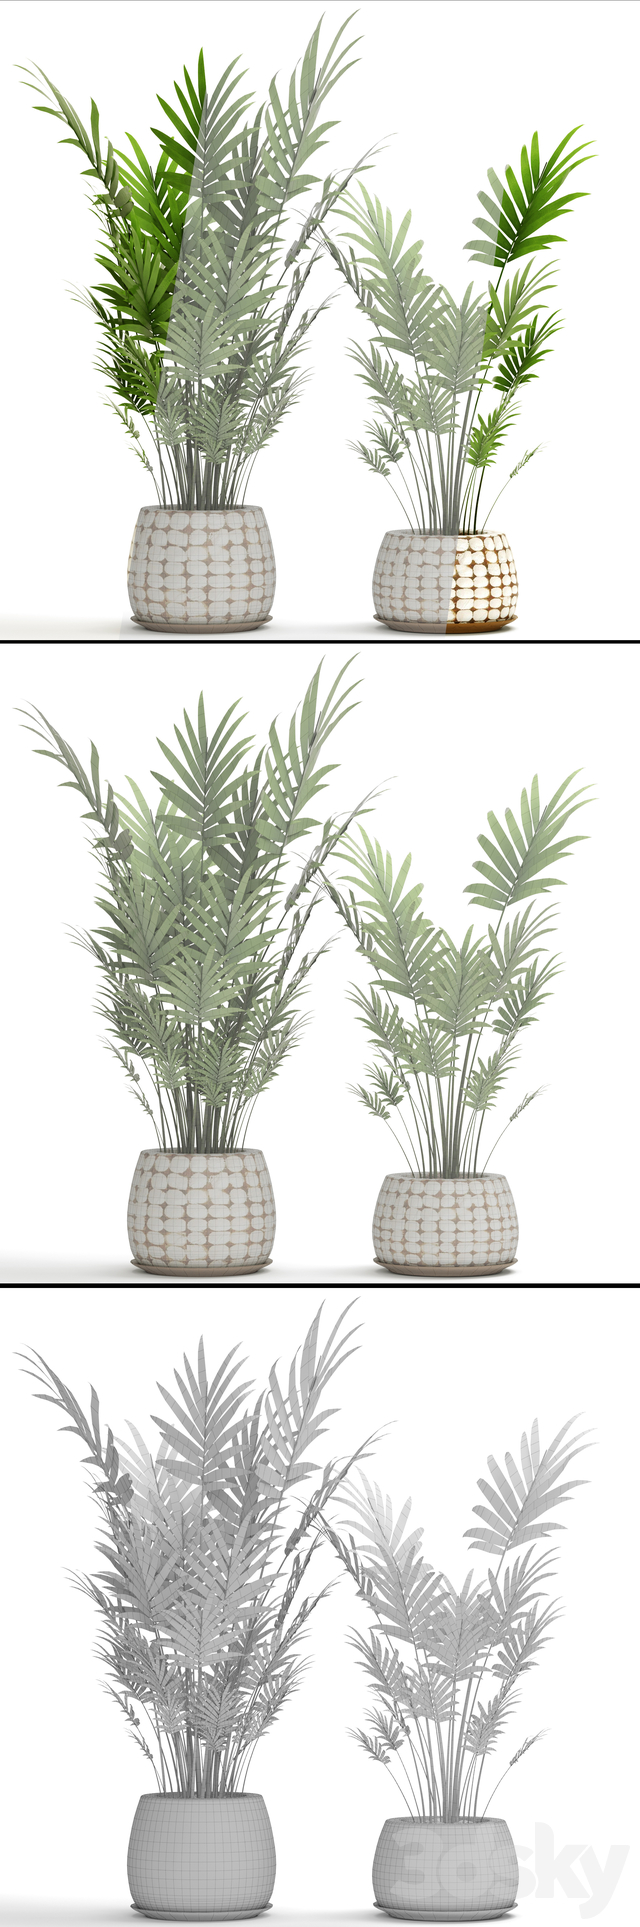 A collection of palms in pots 4